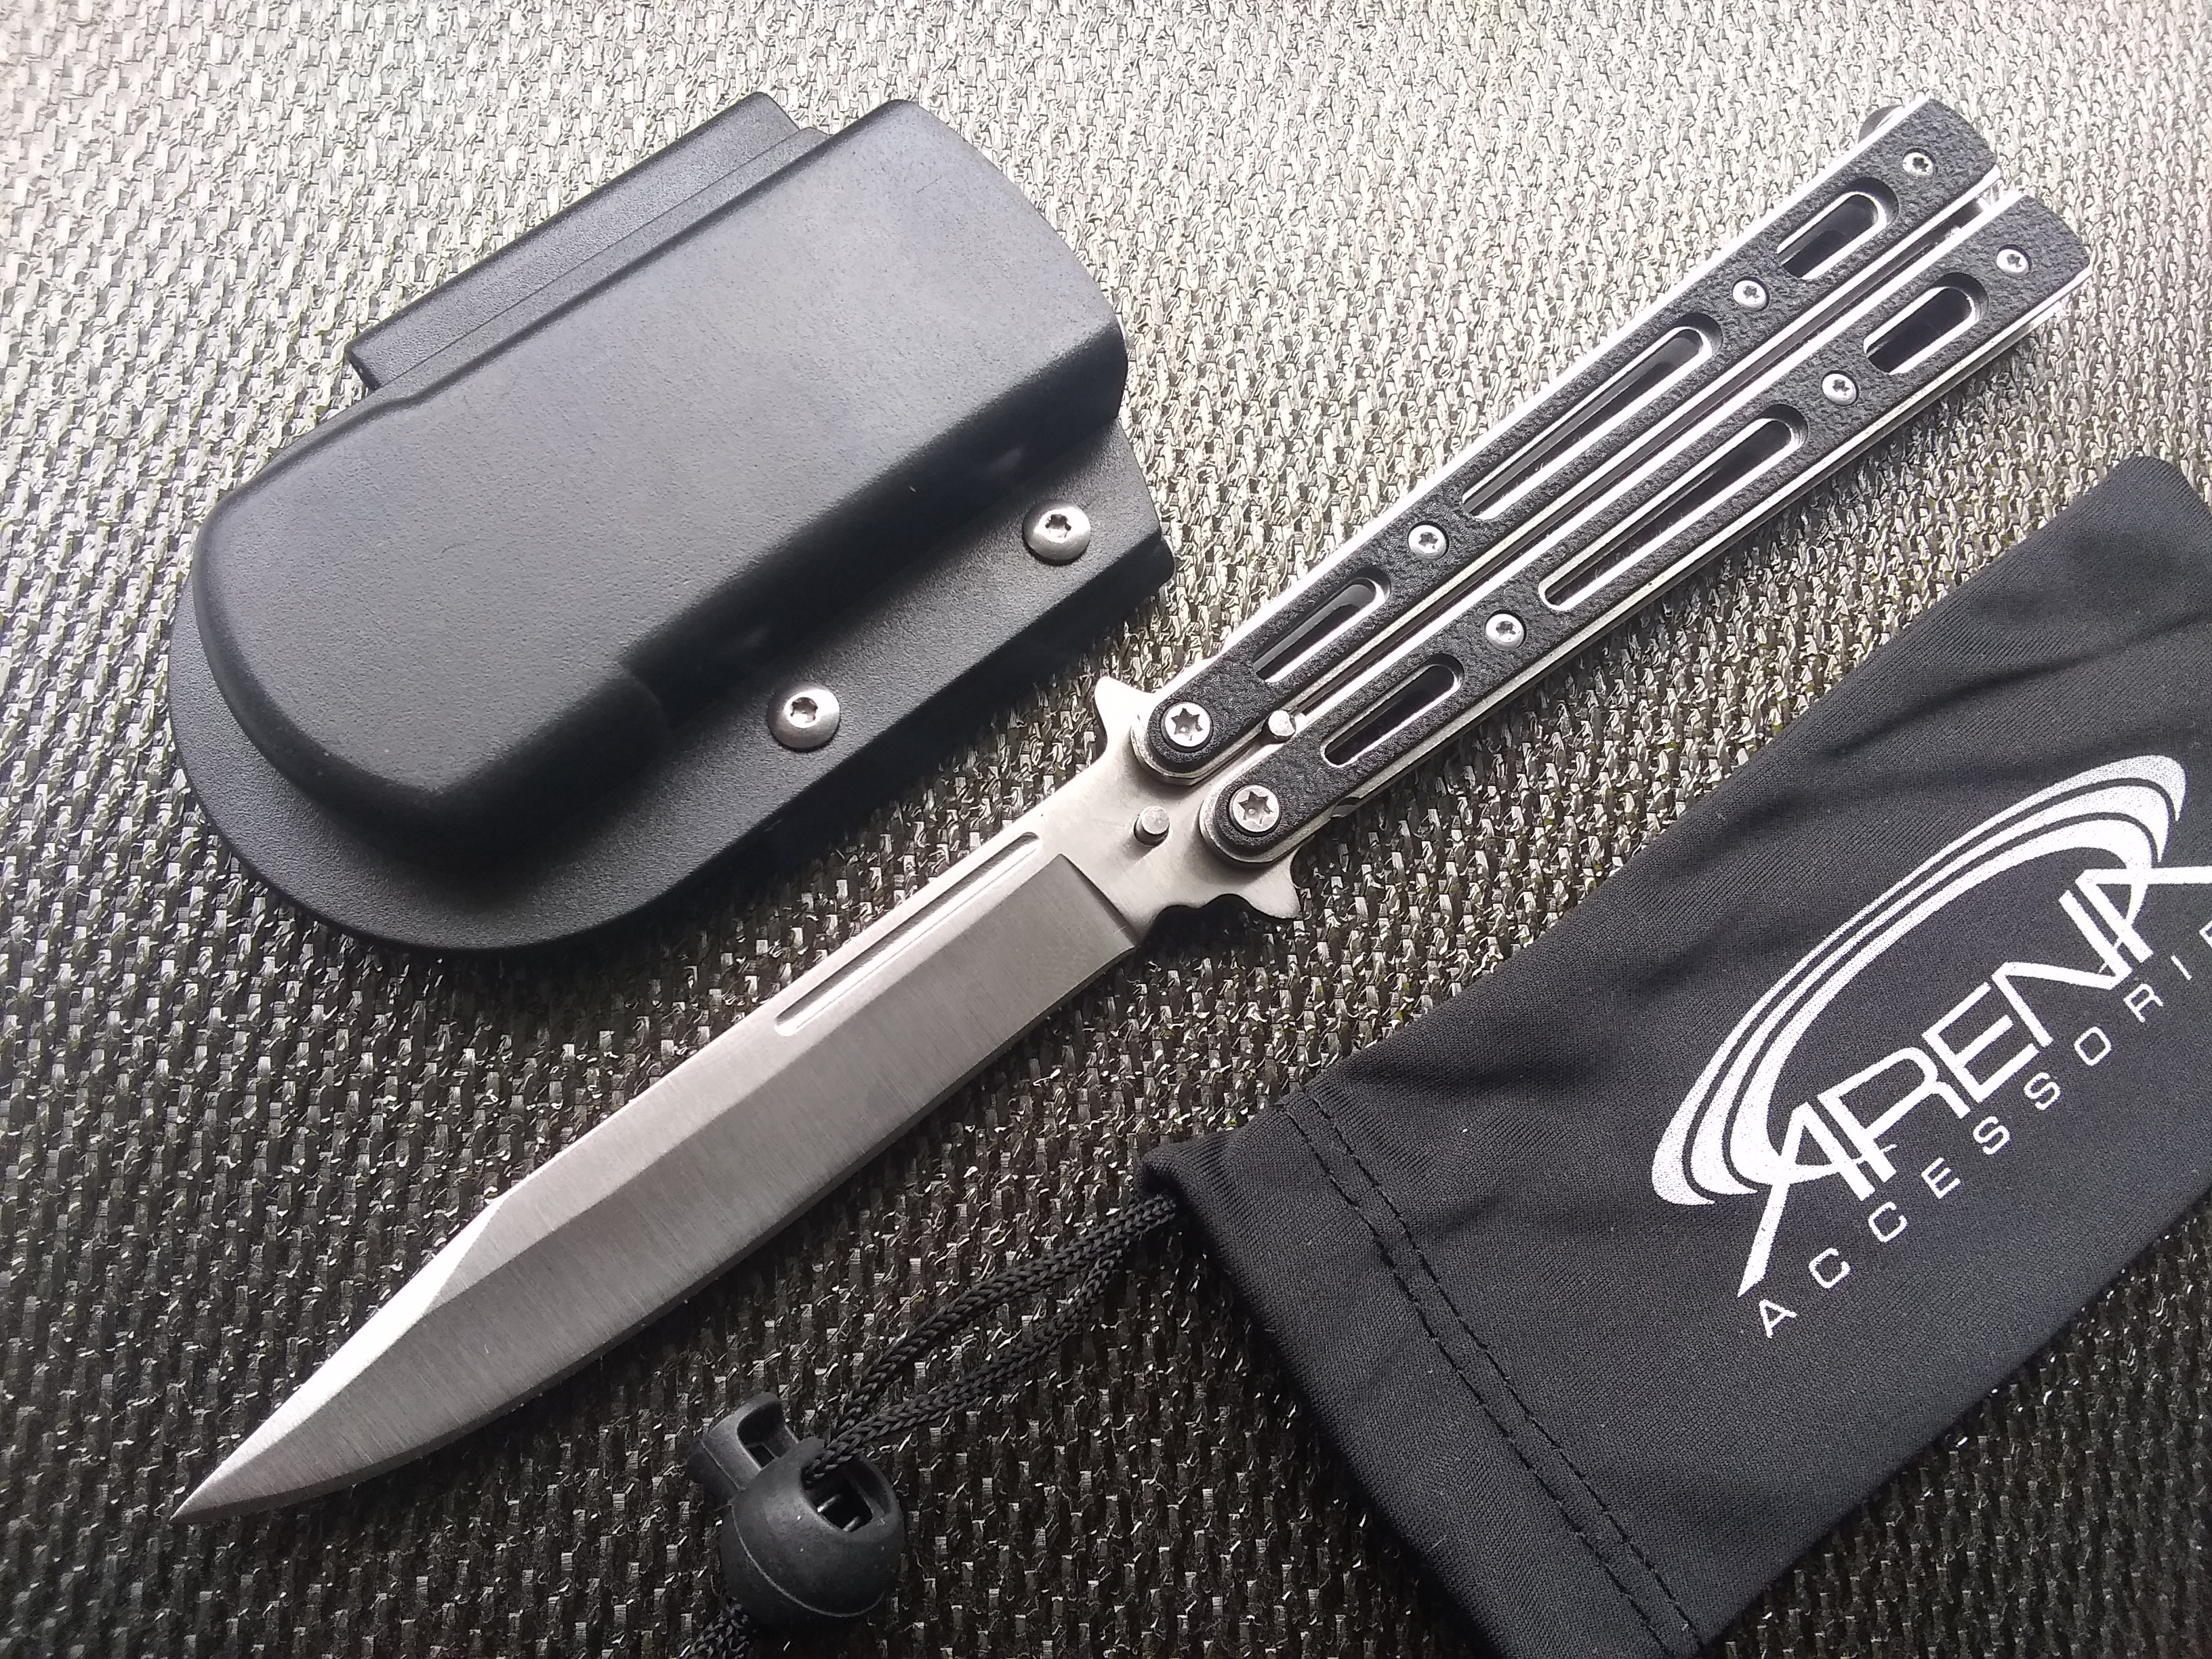 Concealed Carry Balisong Horizontal Belt Mount Butterfly Knife with Grippy G10 Handle Scales High Quality & Heavy Duty